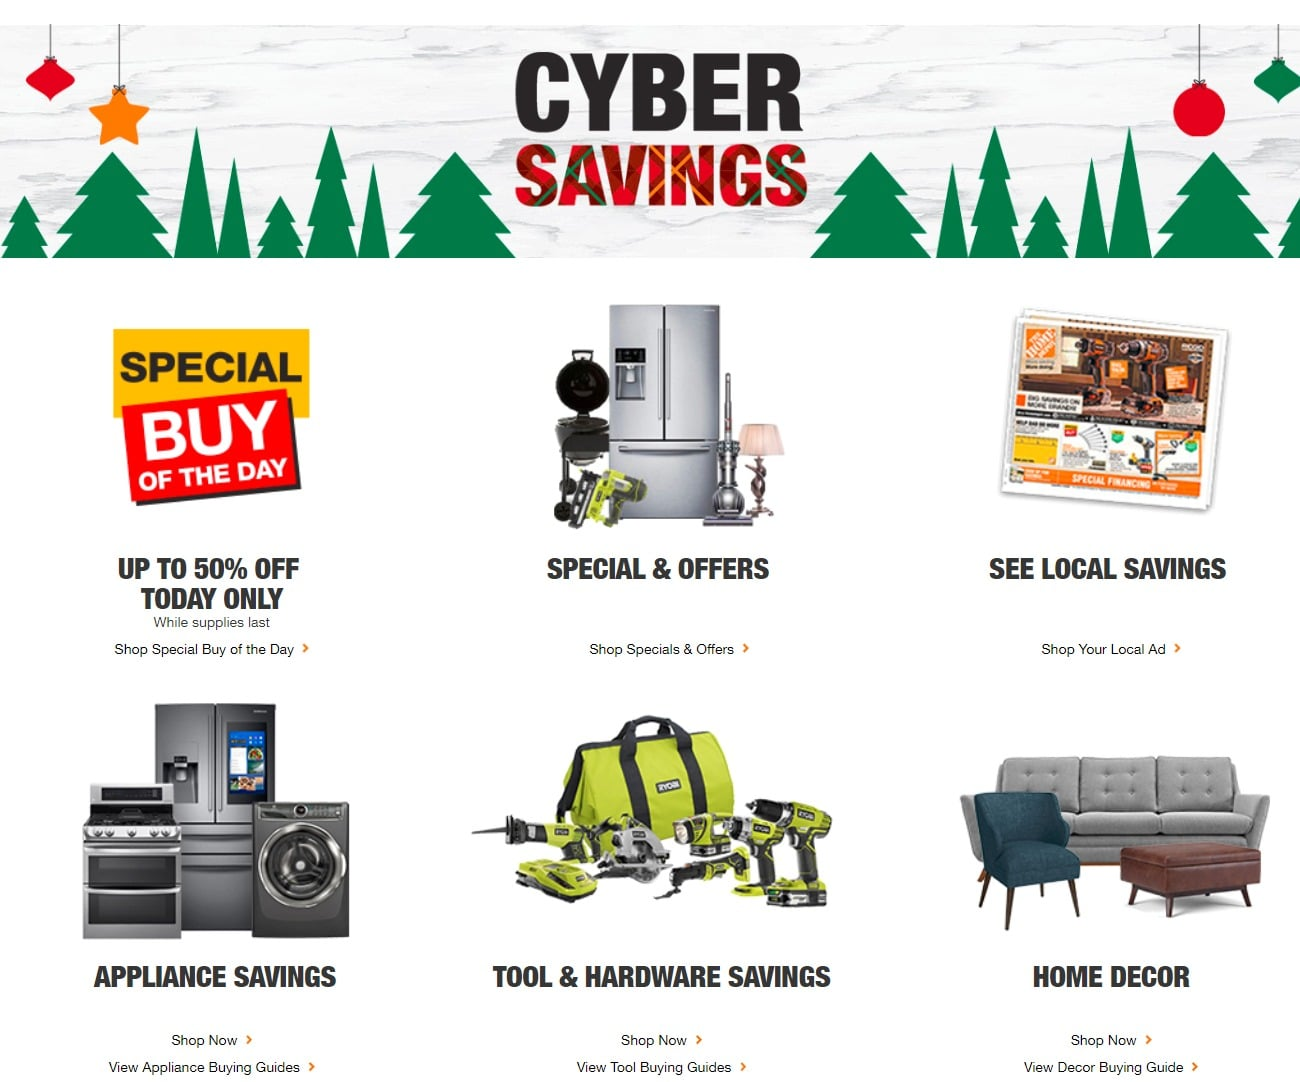 ace2a94fee2 Home Depot Cyber Monday Ad 2018